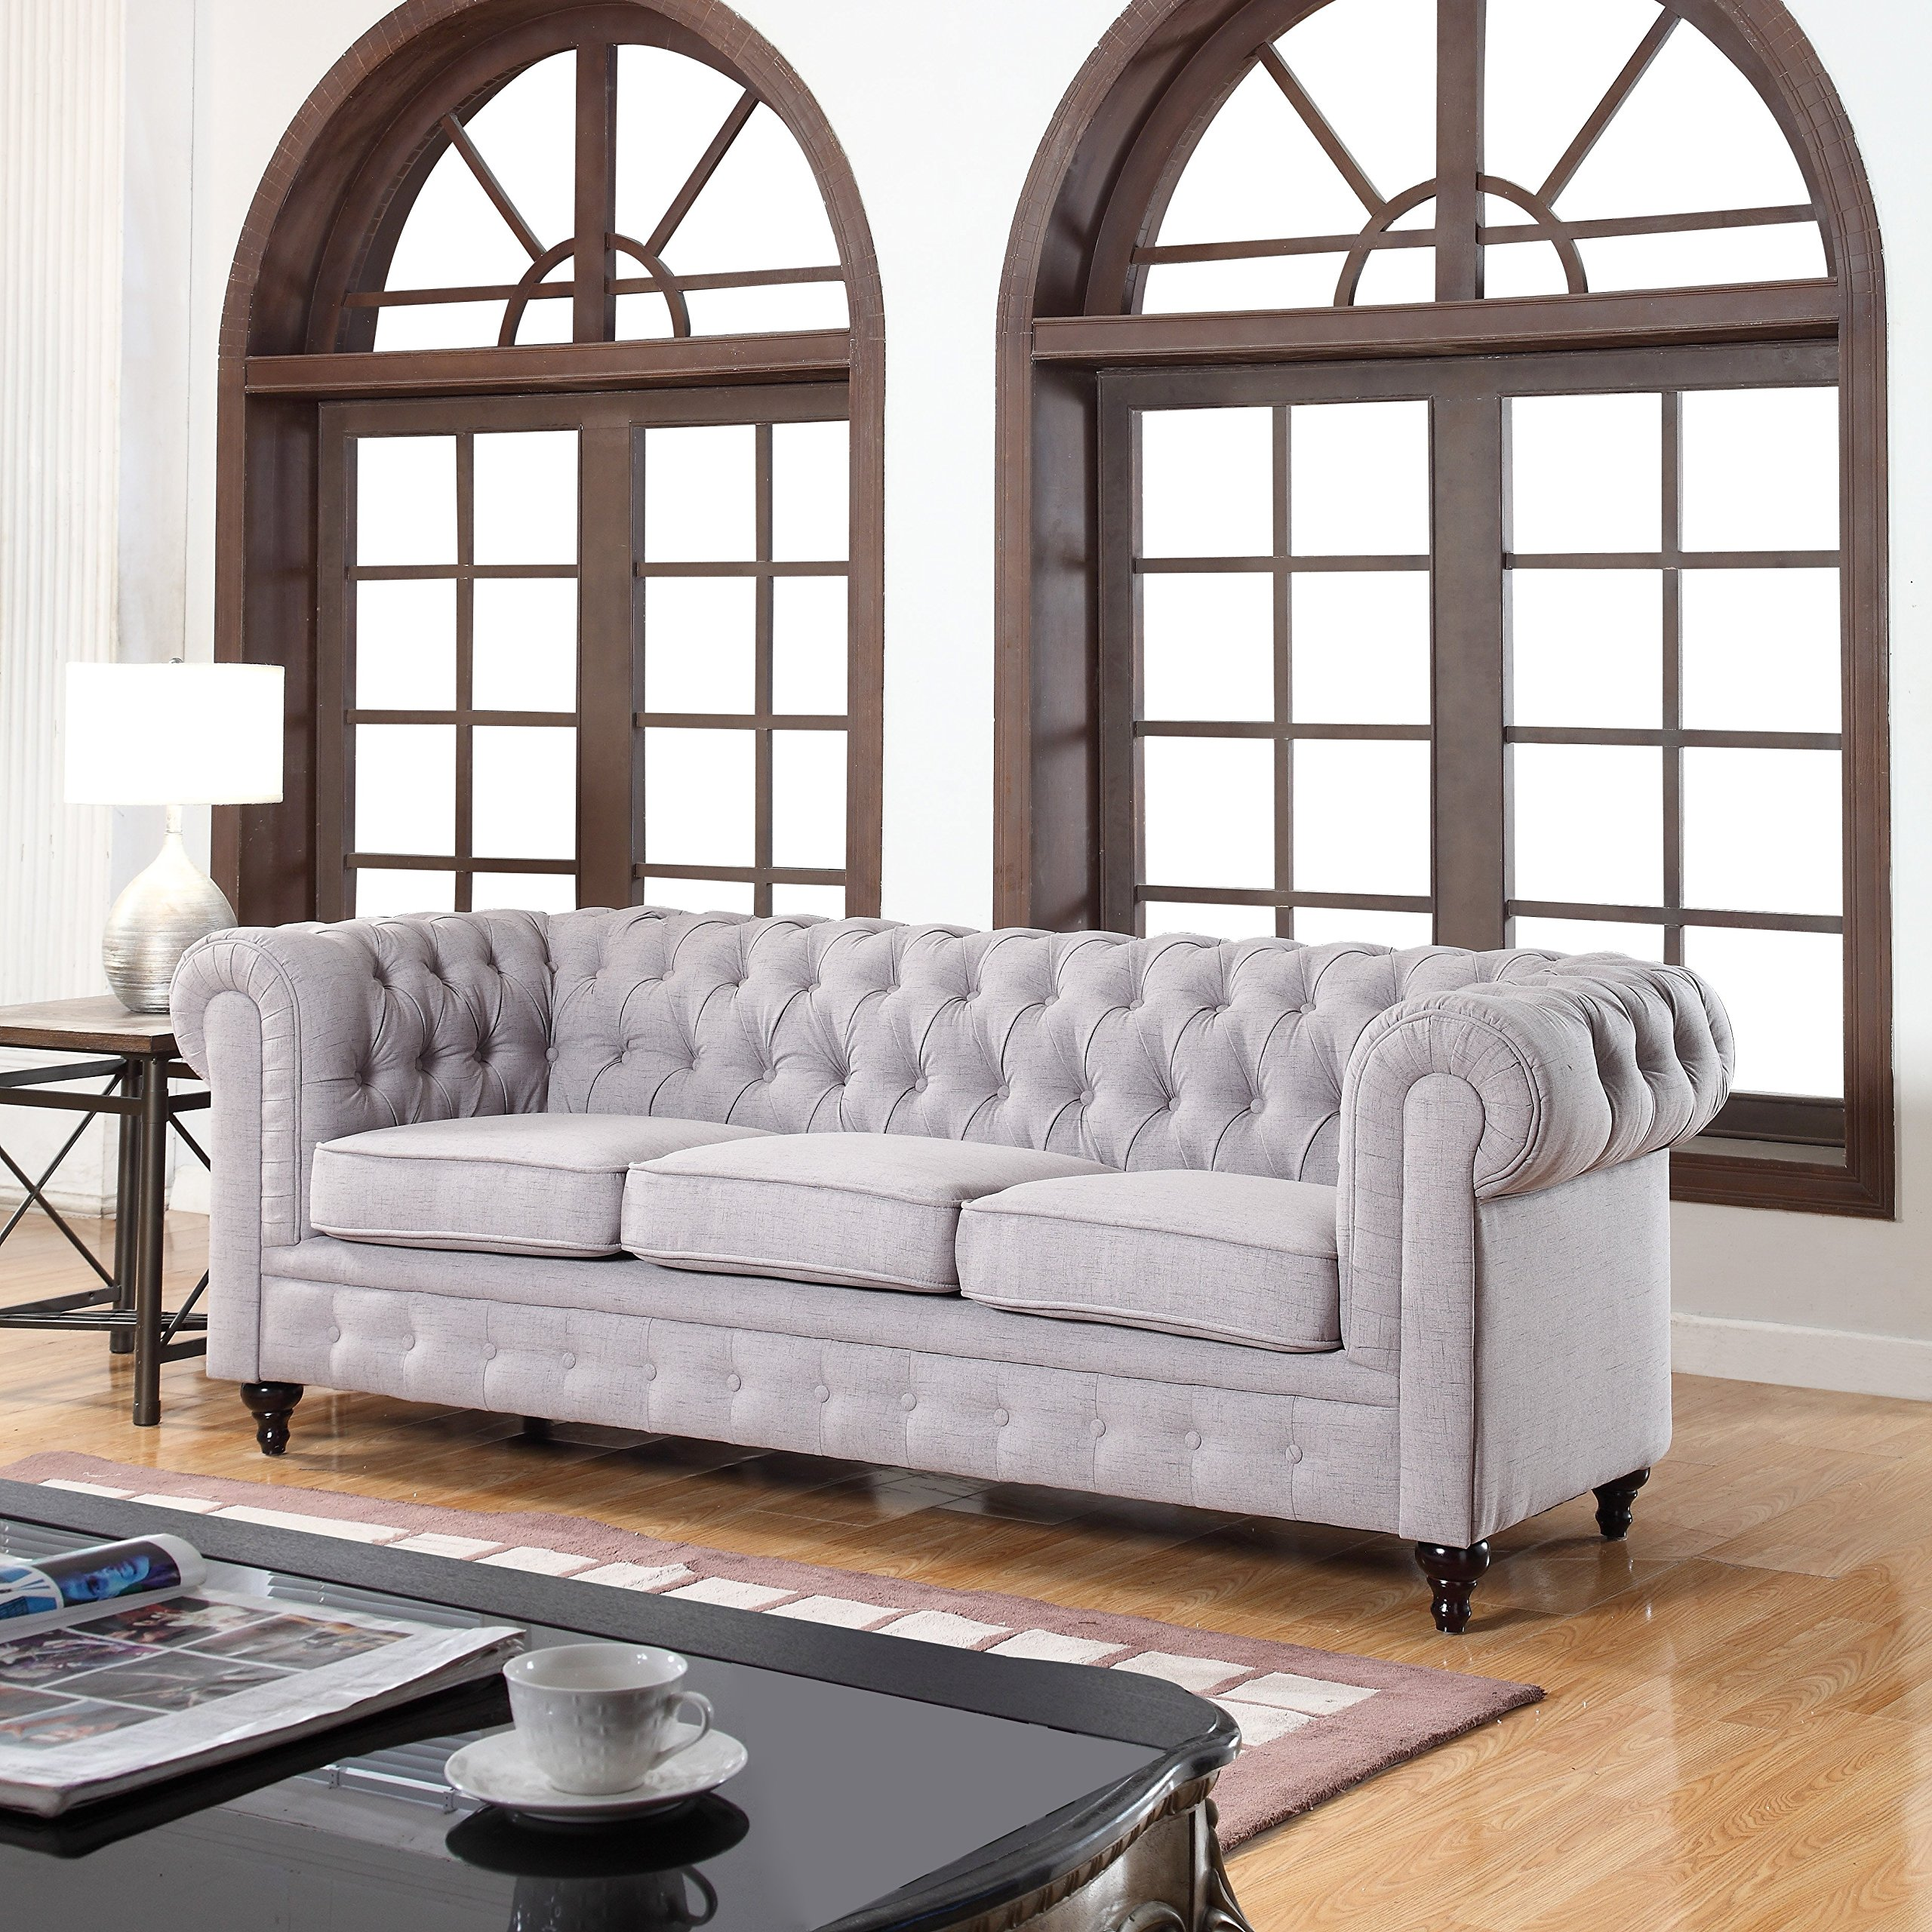 Classic Linen Fabric Scroll Arm Tufted Button Chesterfield Style Sofa (Stone)